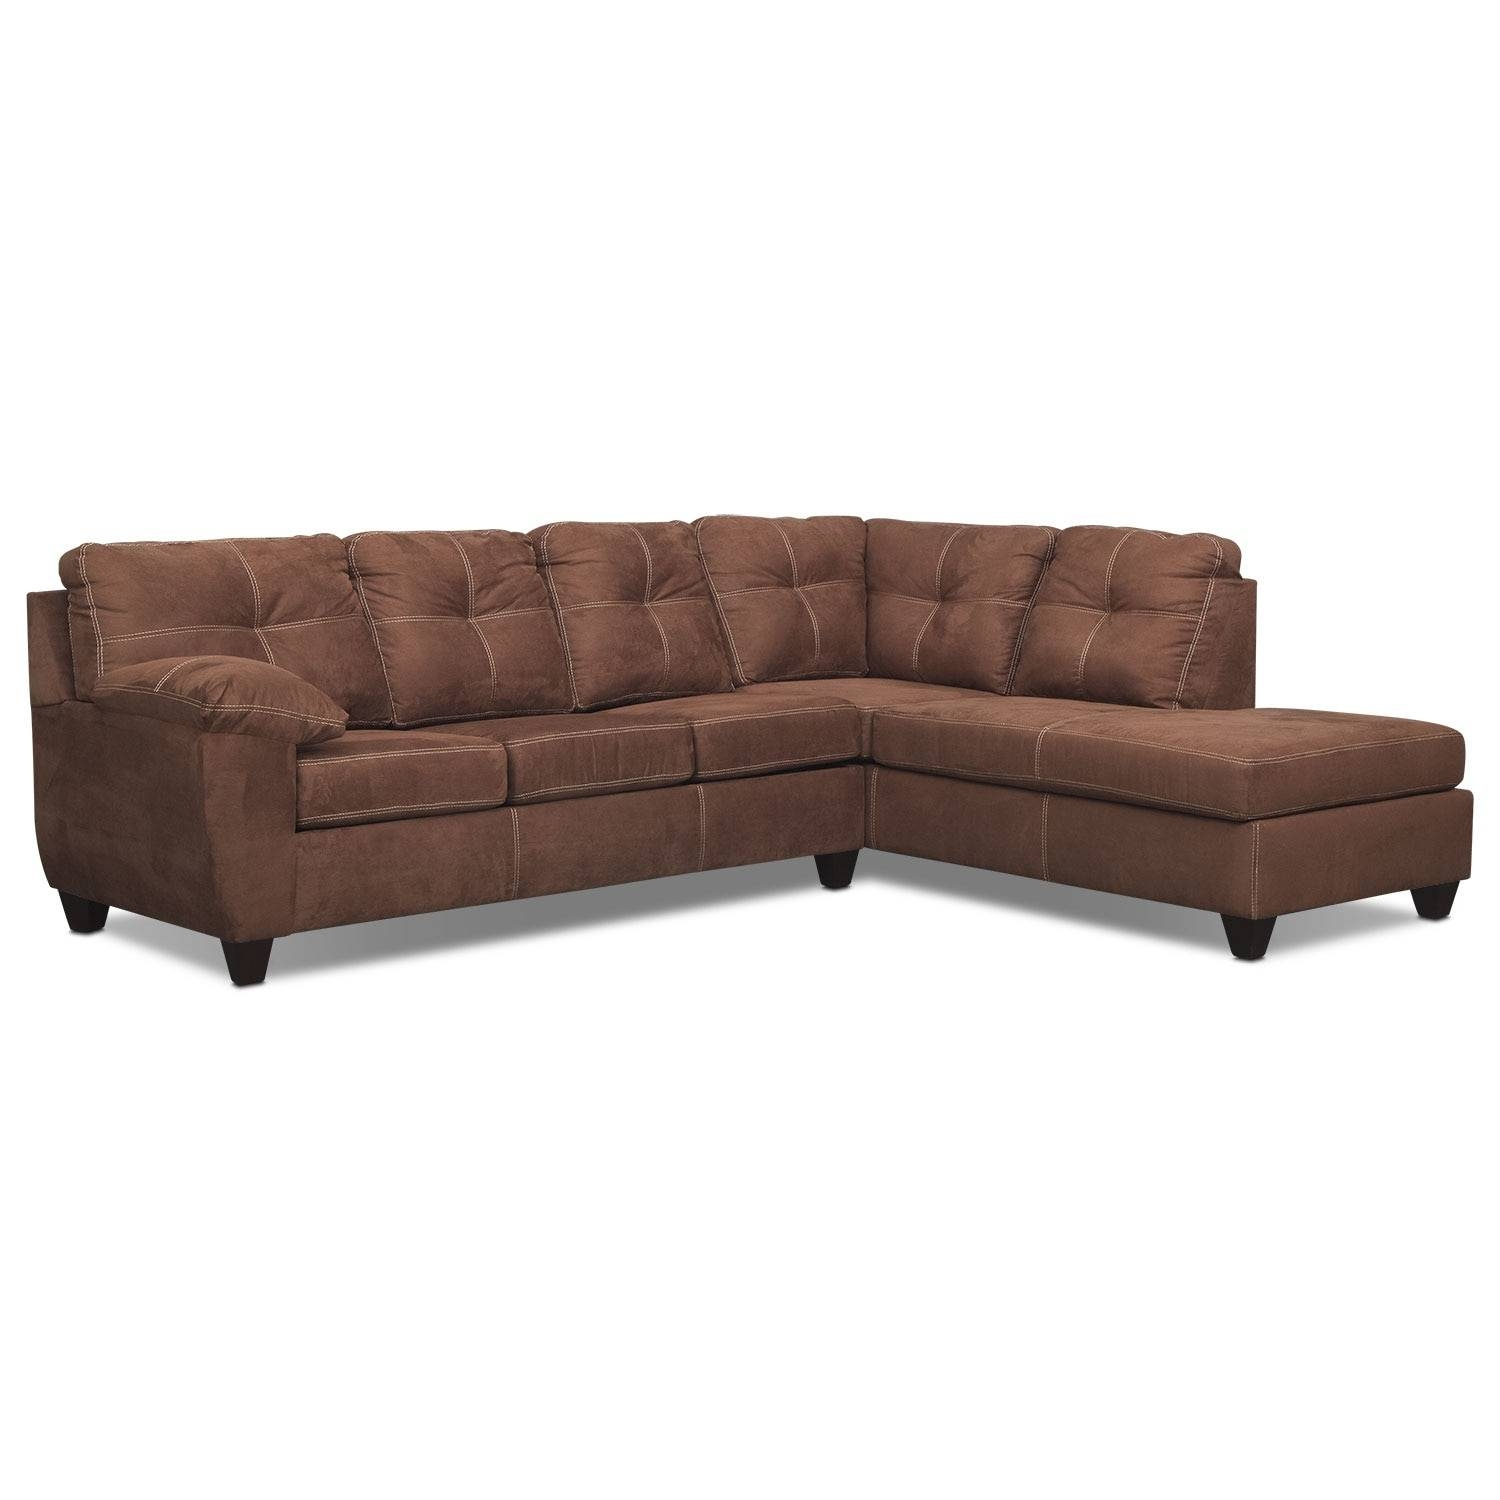 Sleeper Sofas | Value City | Value City Furniture Regarding City Sofa Beds (View 19 of 30)